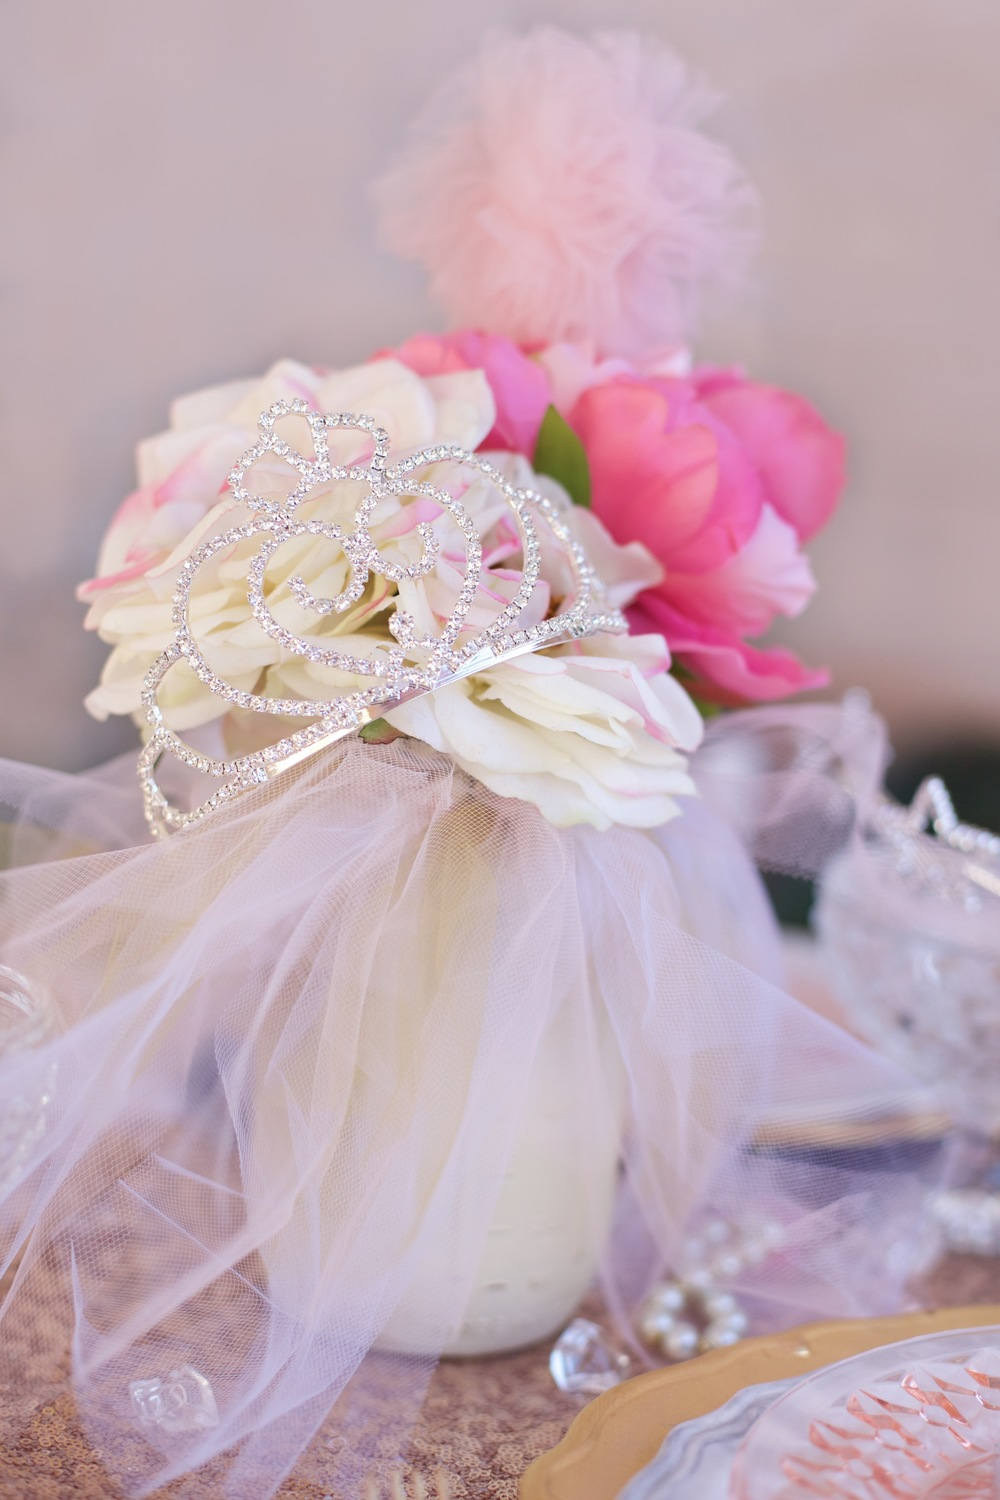 Copy Of A Rental Collection With An Elaborate Ensemble Of Pink Tutu  Centerpieces, White Chiavari